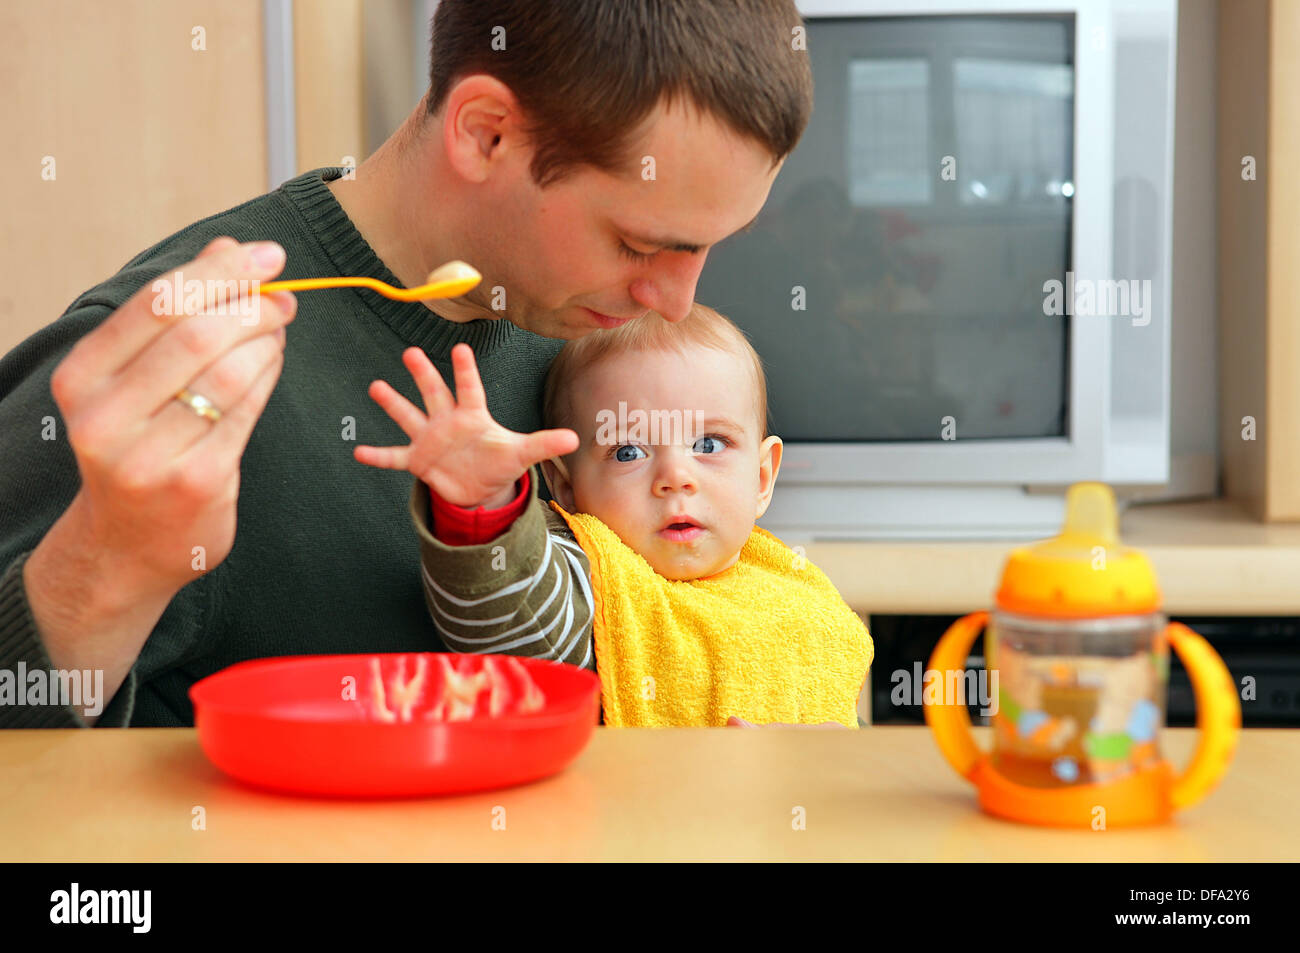 Björn Gerth feeds his son Tilman on the 20th of March in 2008. Björn Gerth is one of more than 2,400 men in Rhineland-Palatinate sharing parental leave with their partner. - Stock Image